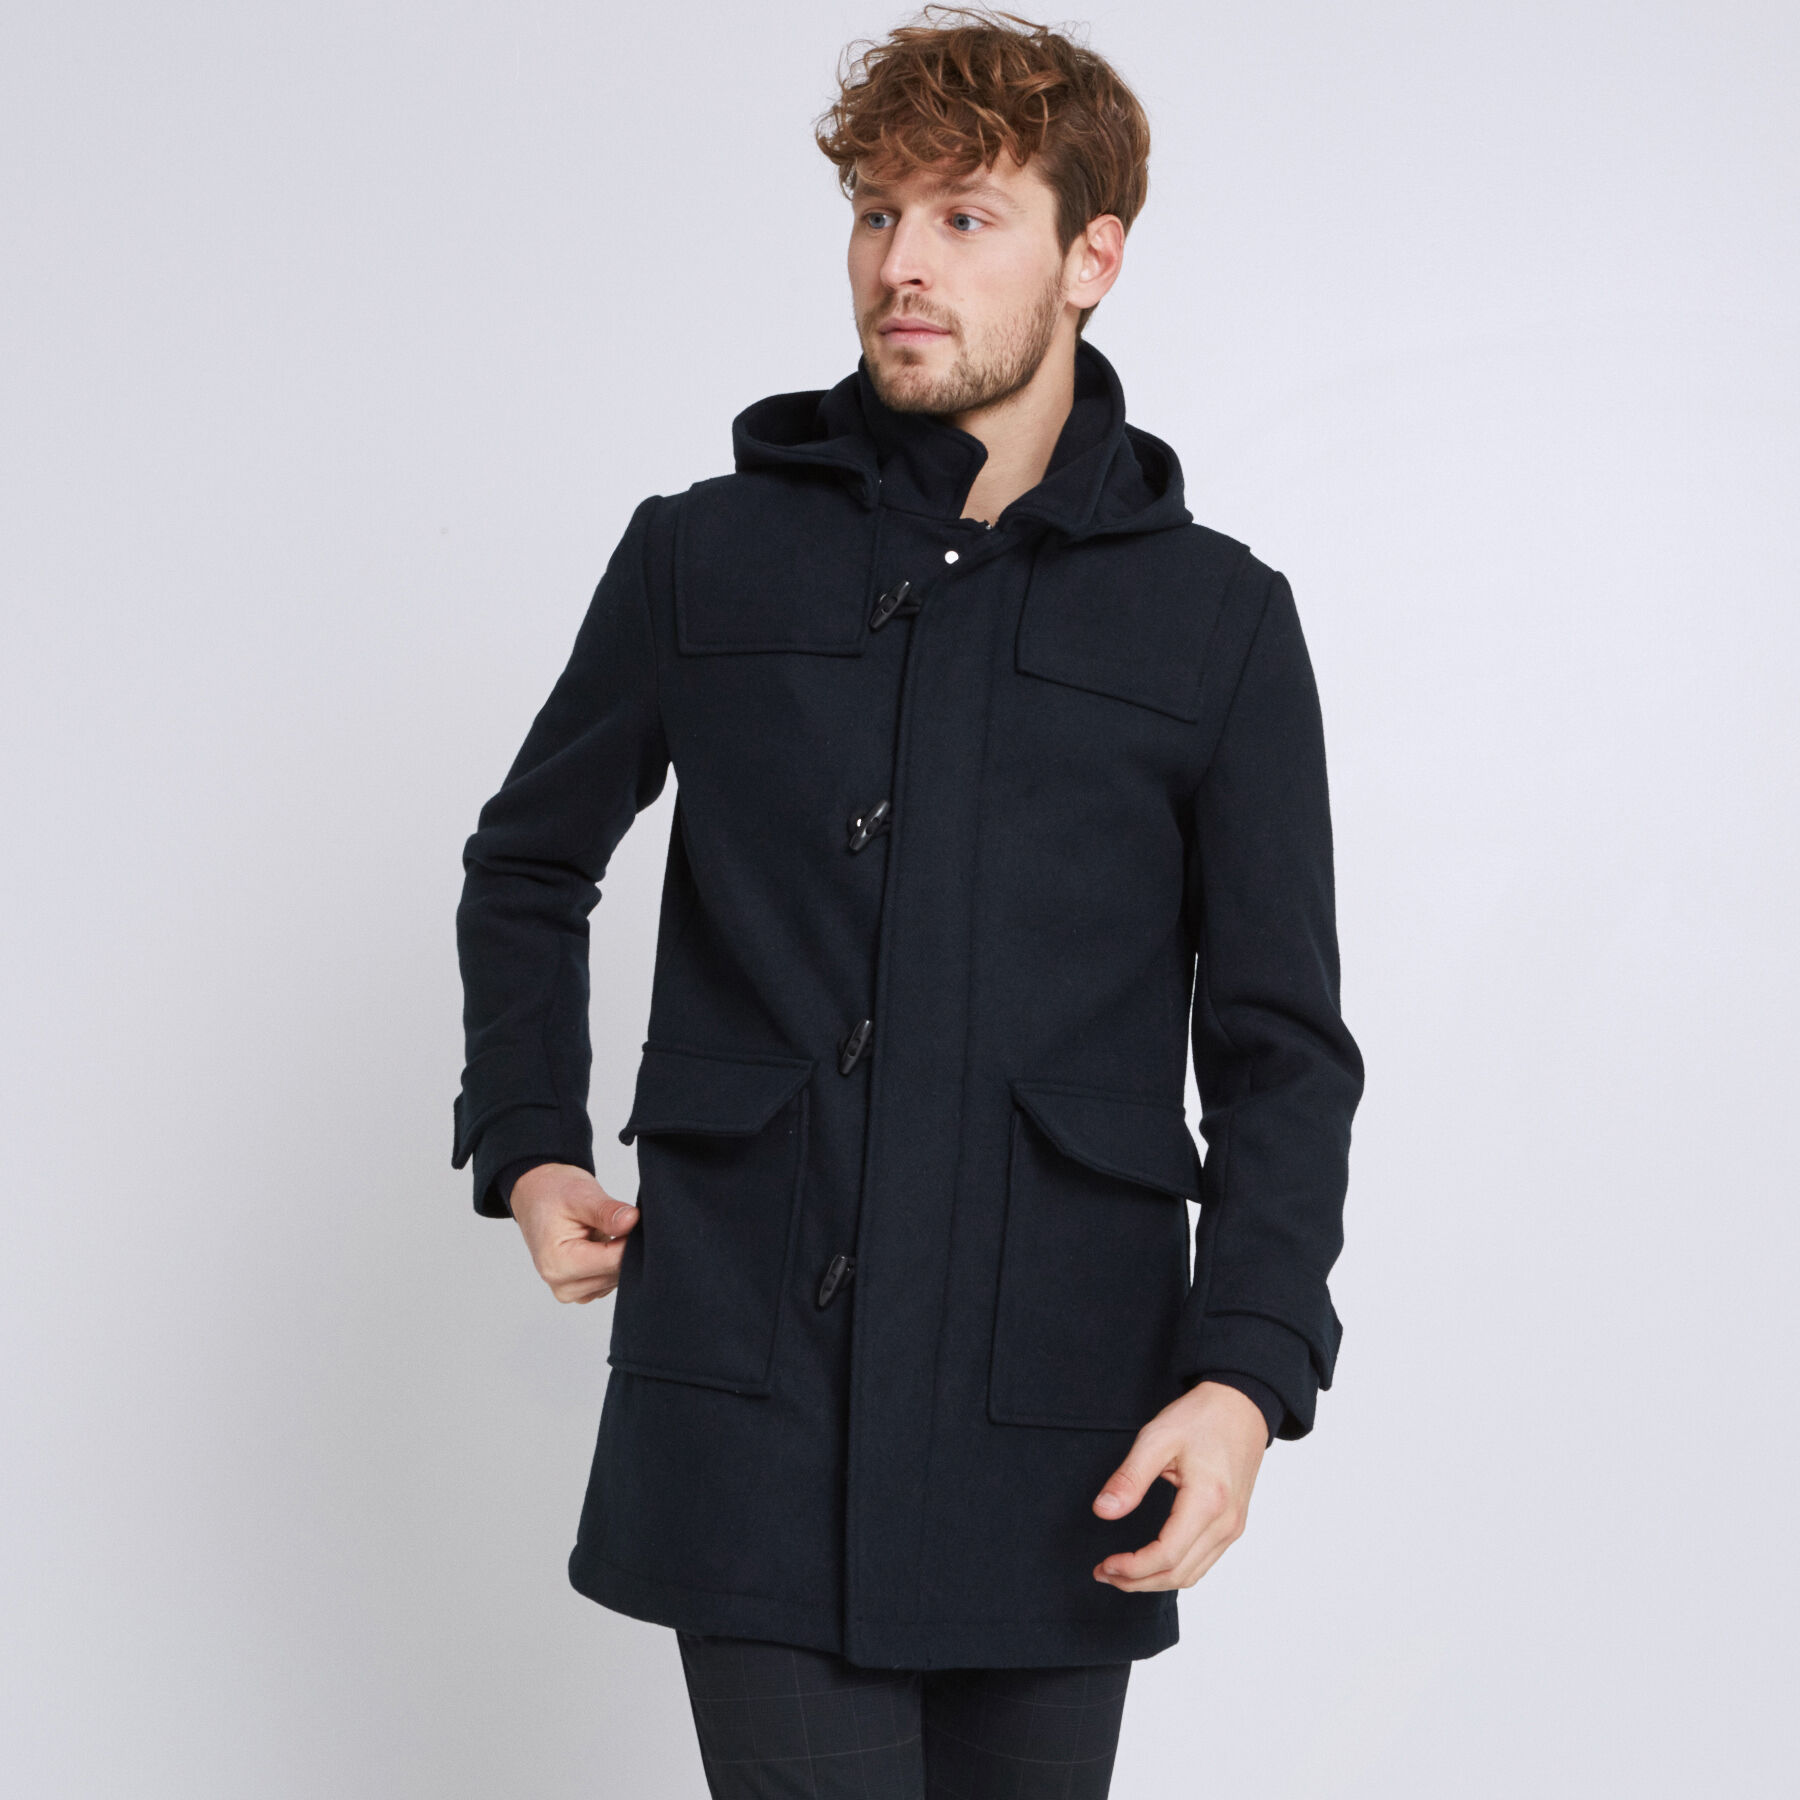 duffle coat capuche amovible bleu marine homme jules. Black Bedroom Furniture Sets. Home Design Ideas